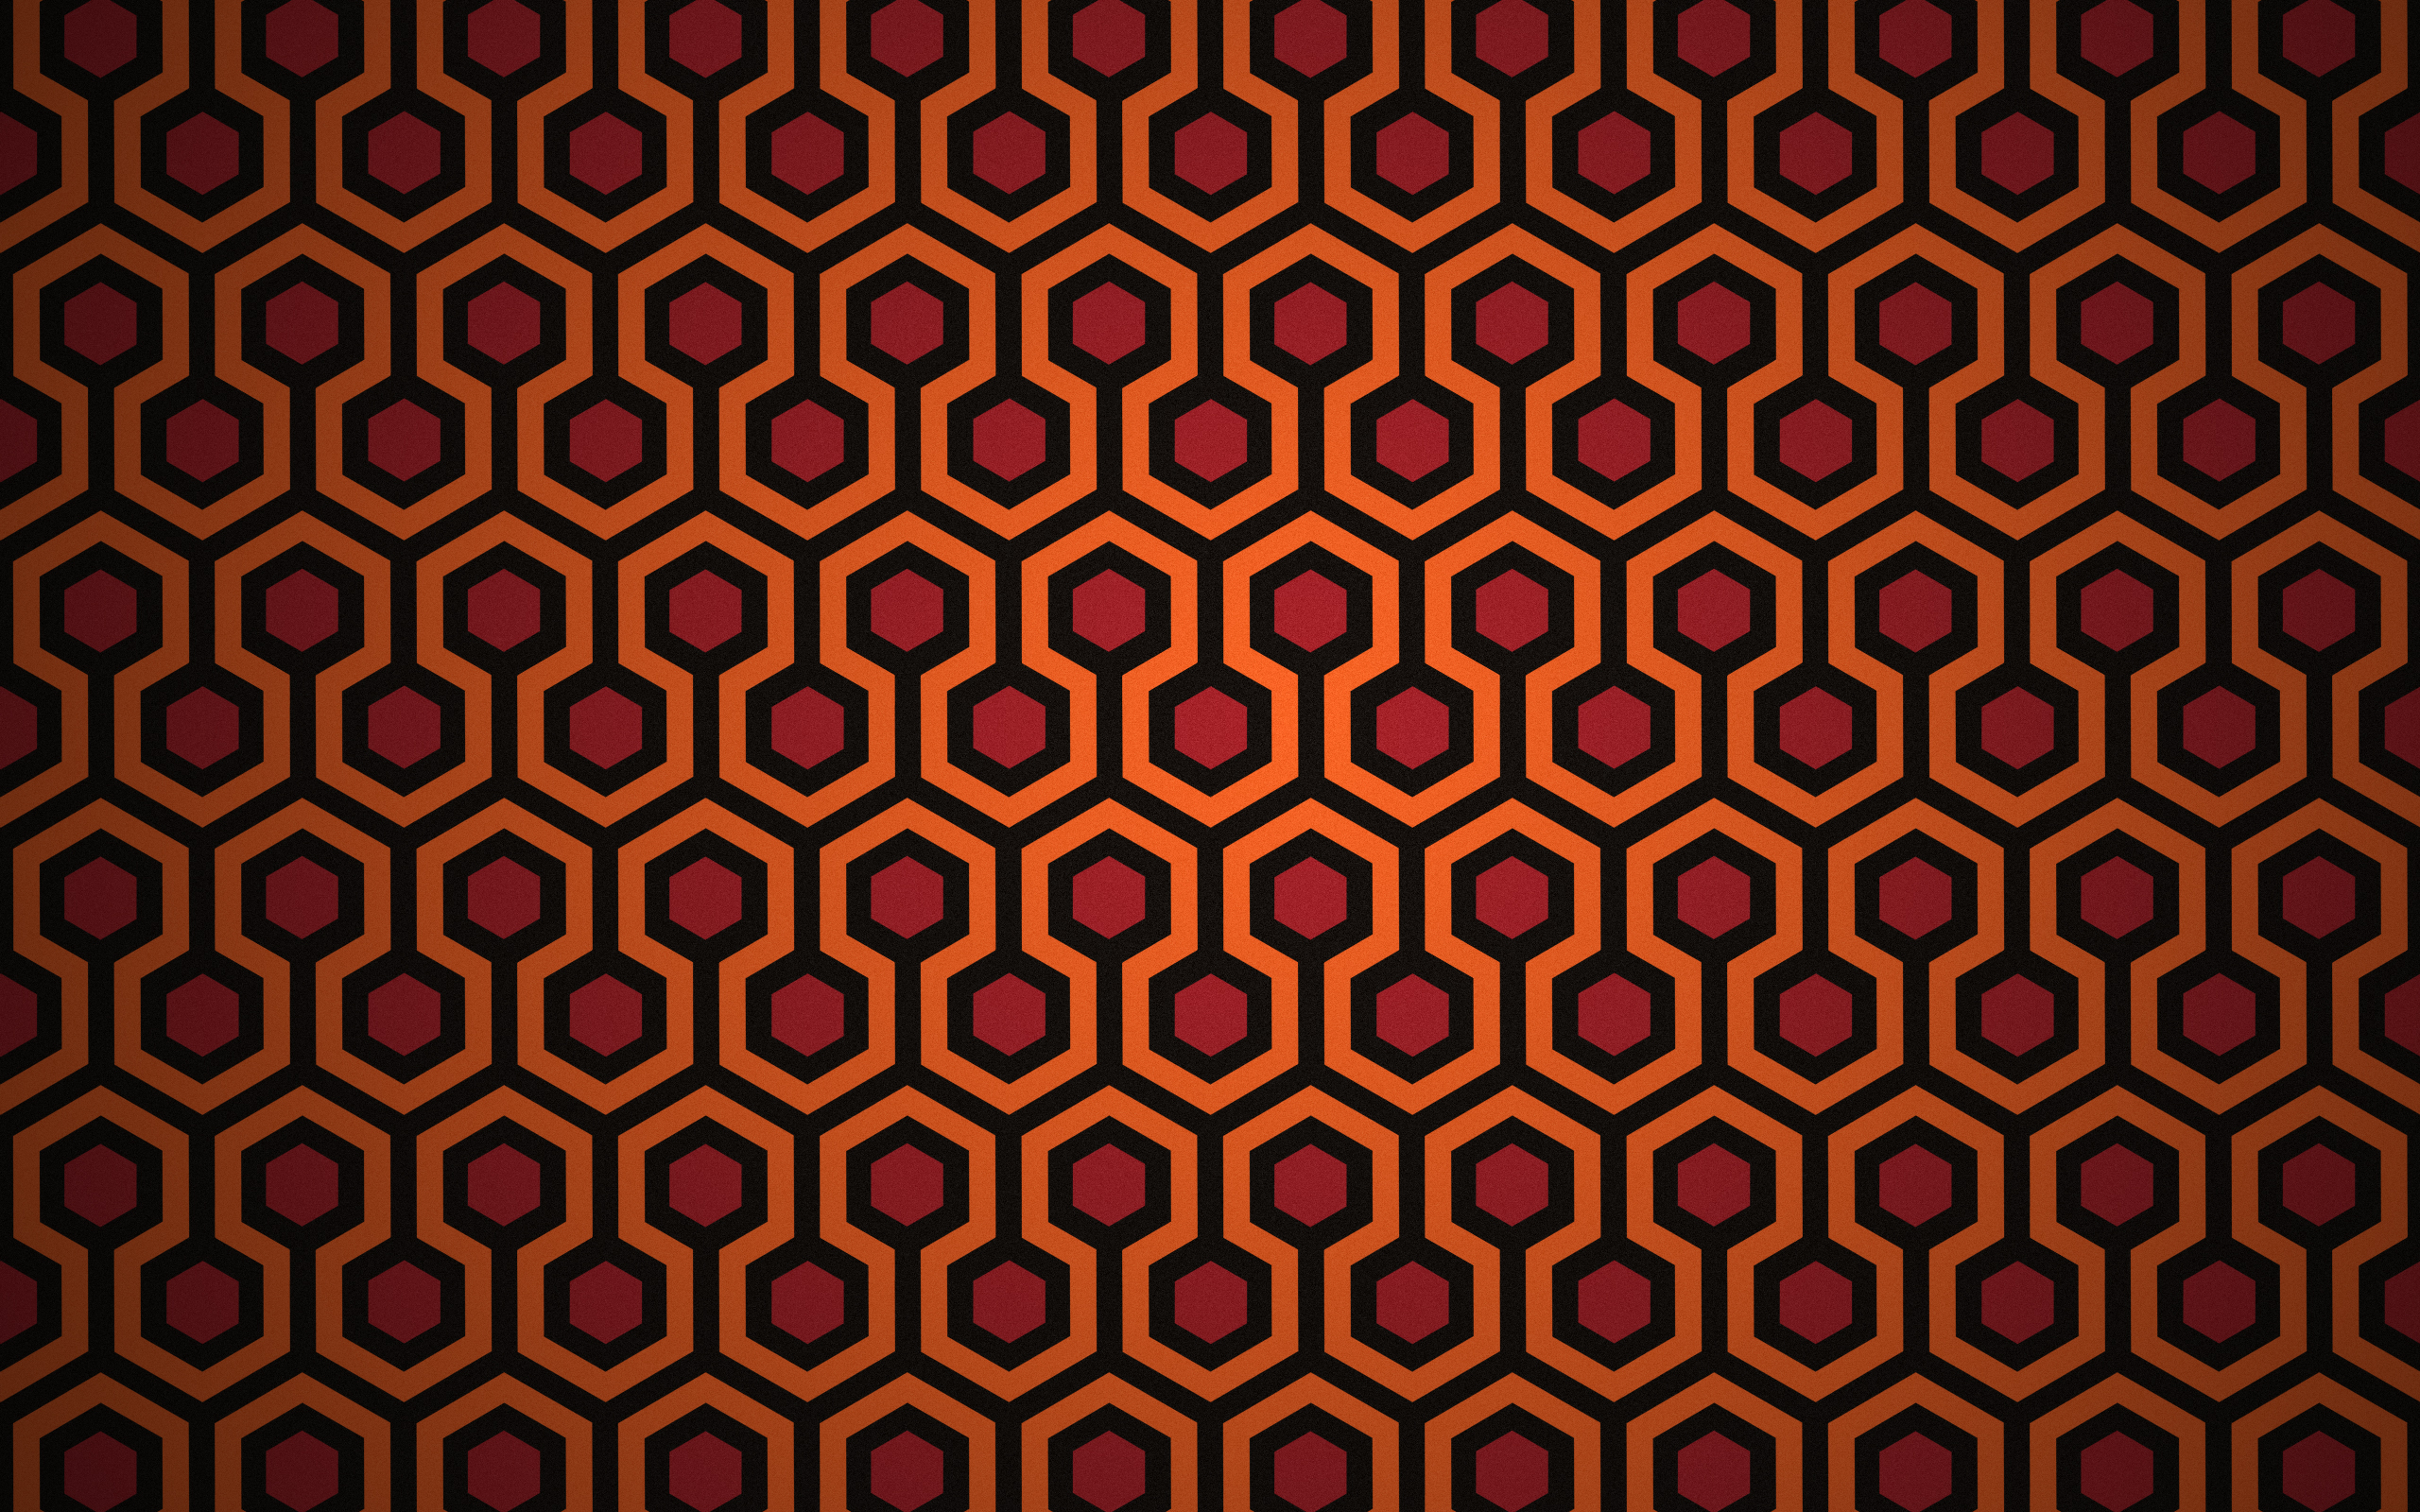 Wallpaper Based On The Carpet From The Shining Not